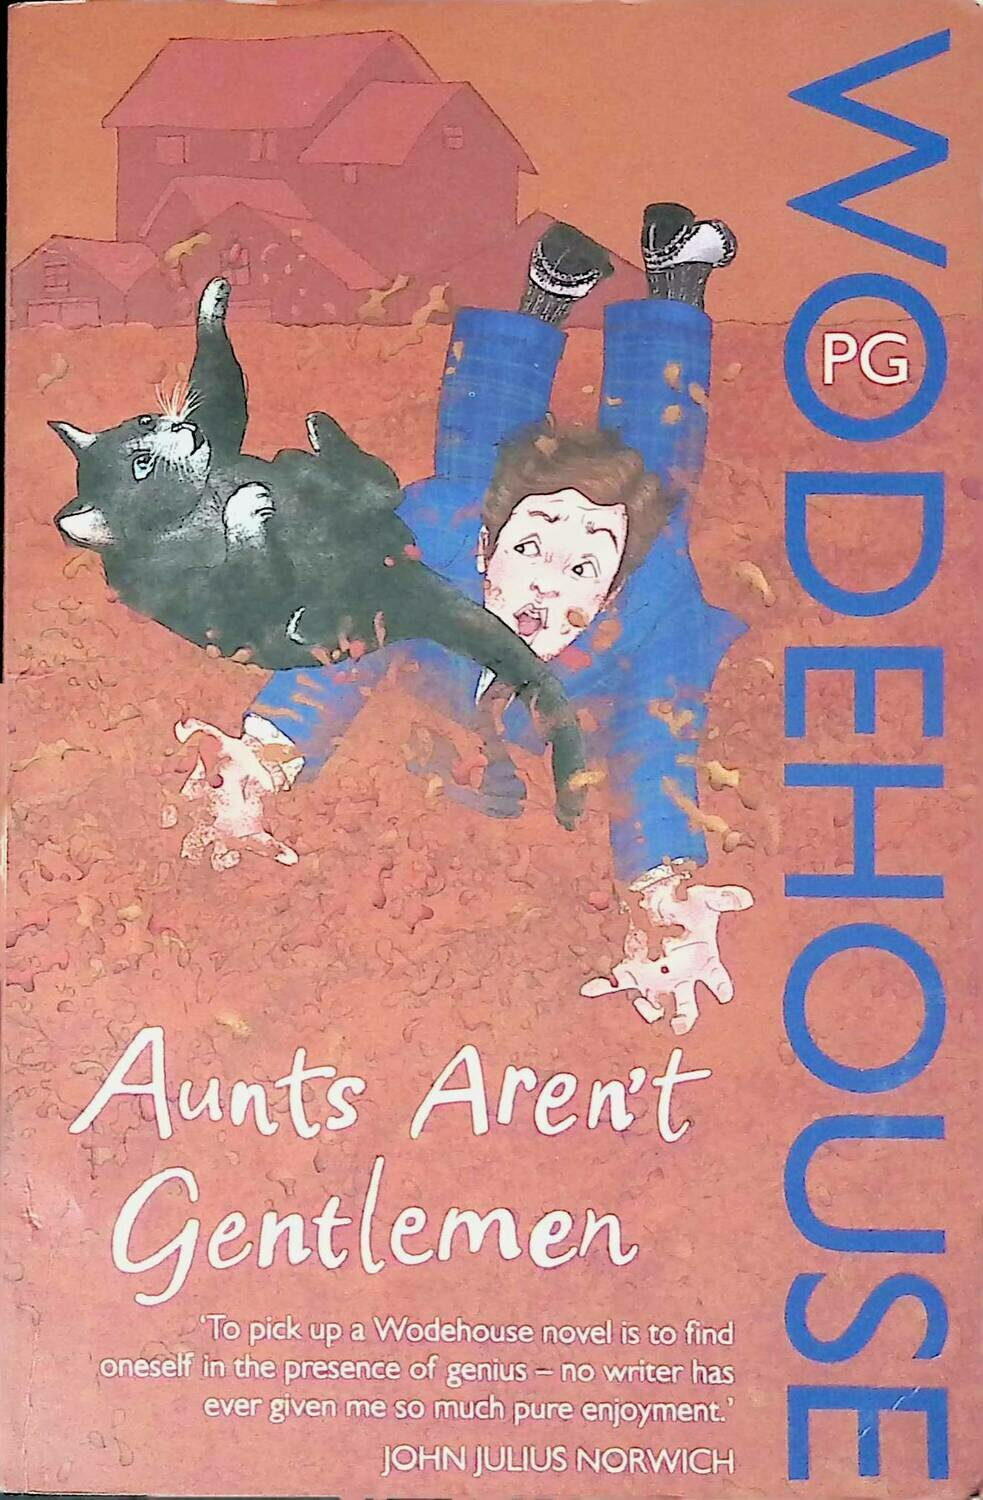 Aunts Aren't Gentlemen; P. G. Wodehouse